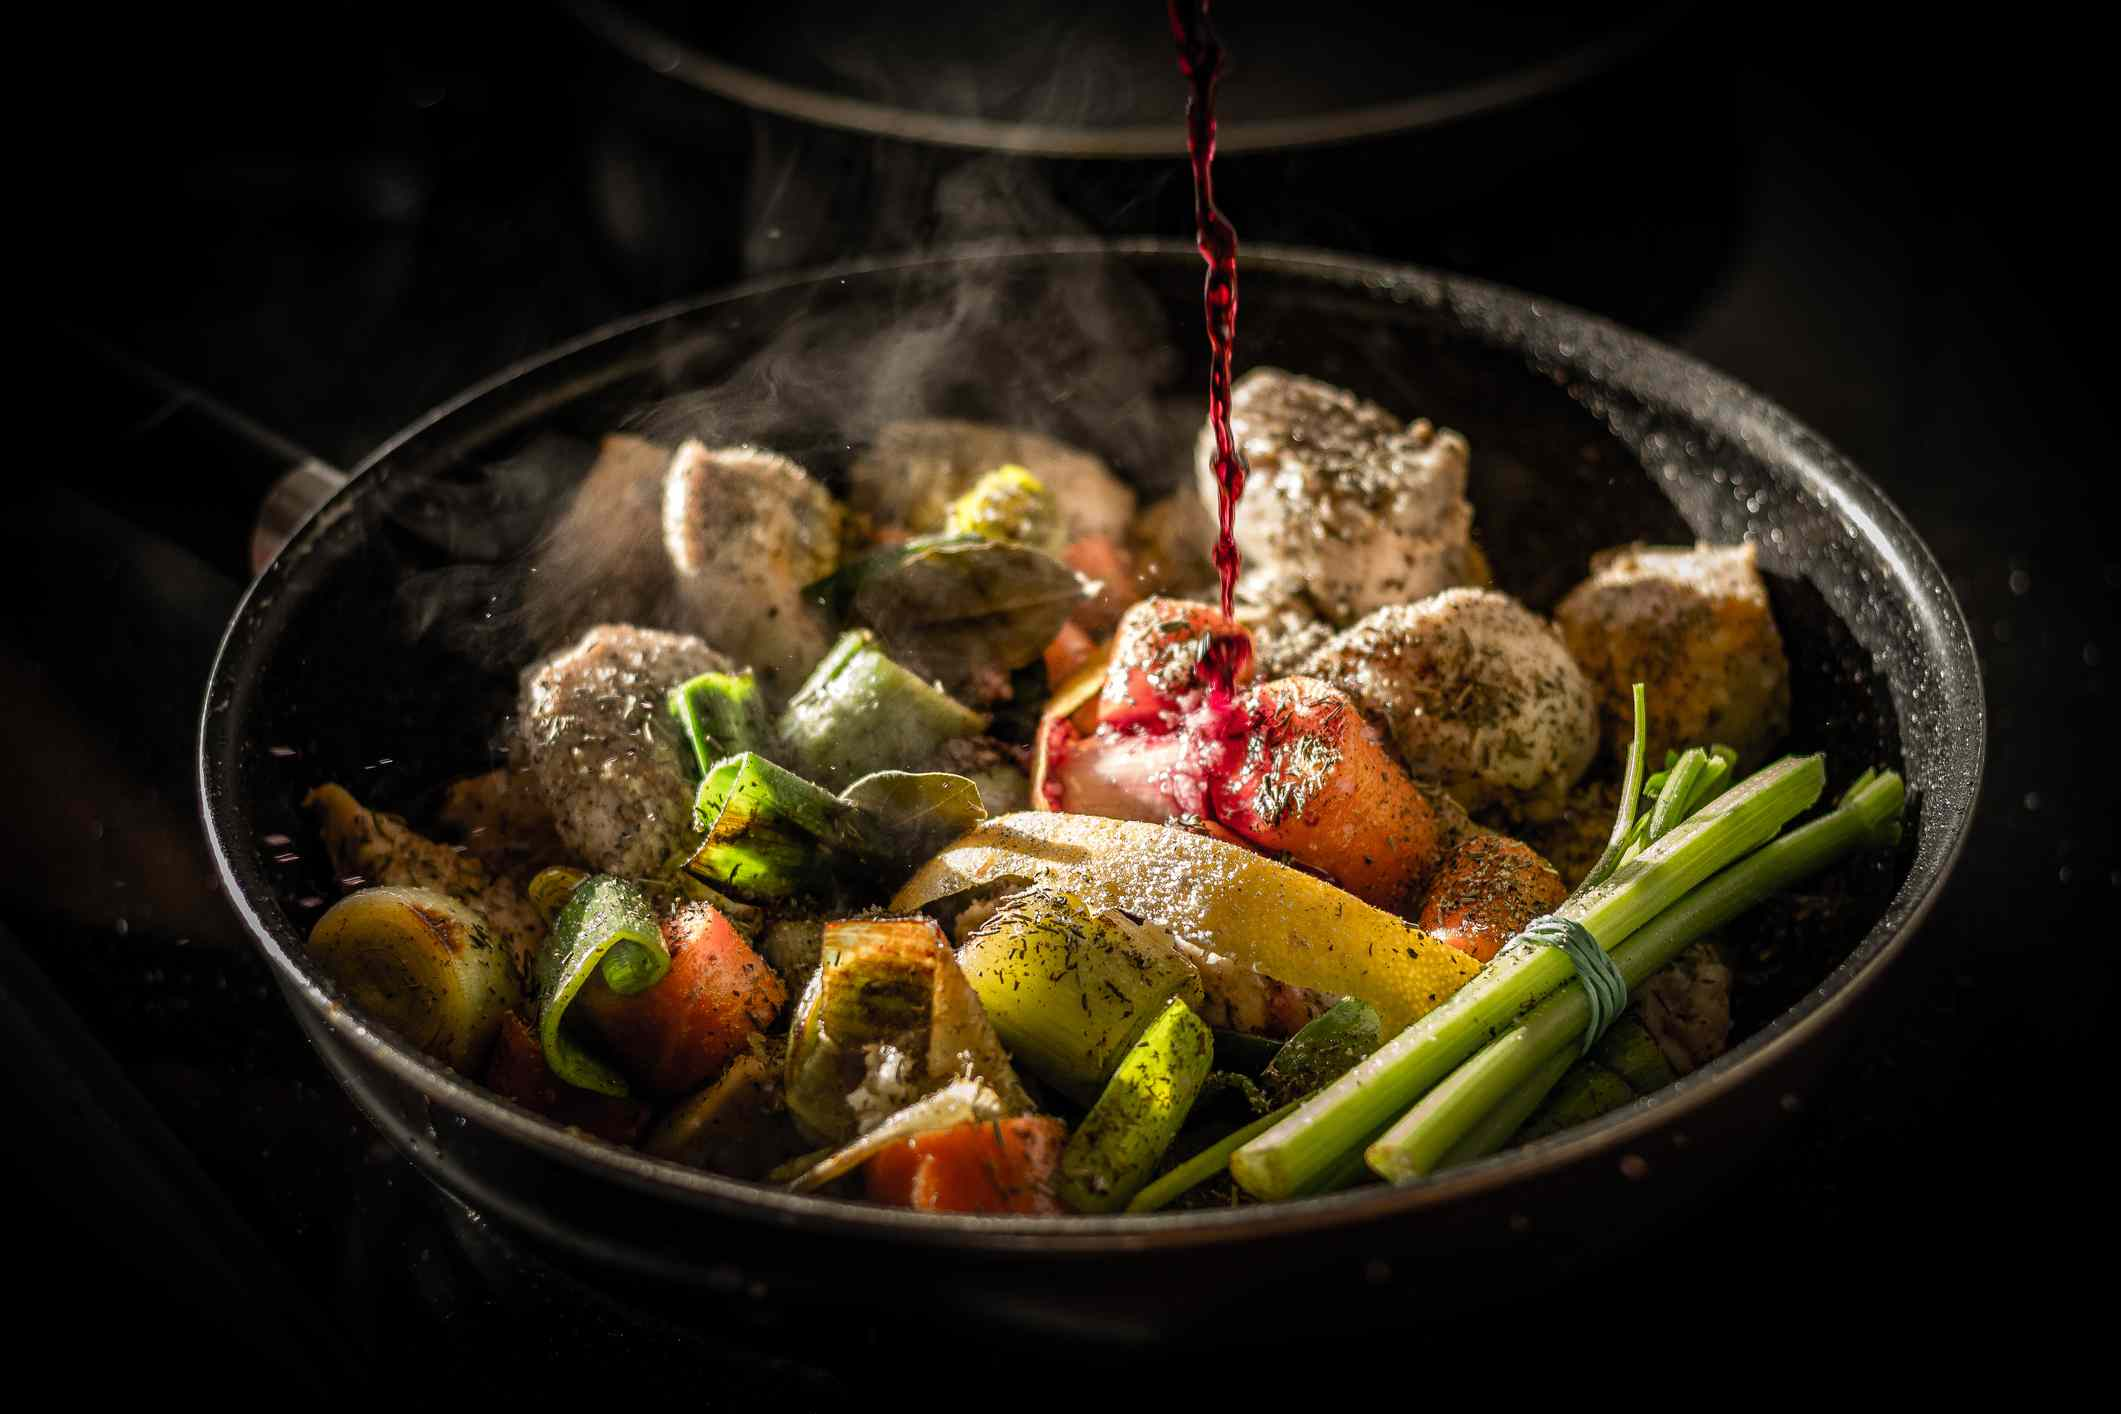 Veges and meat in a pan